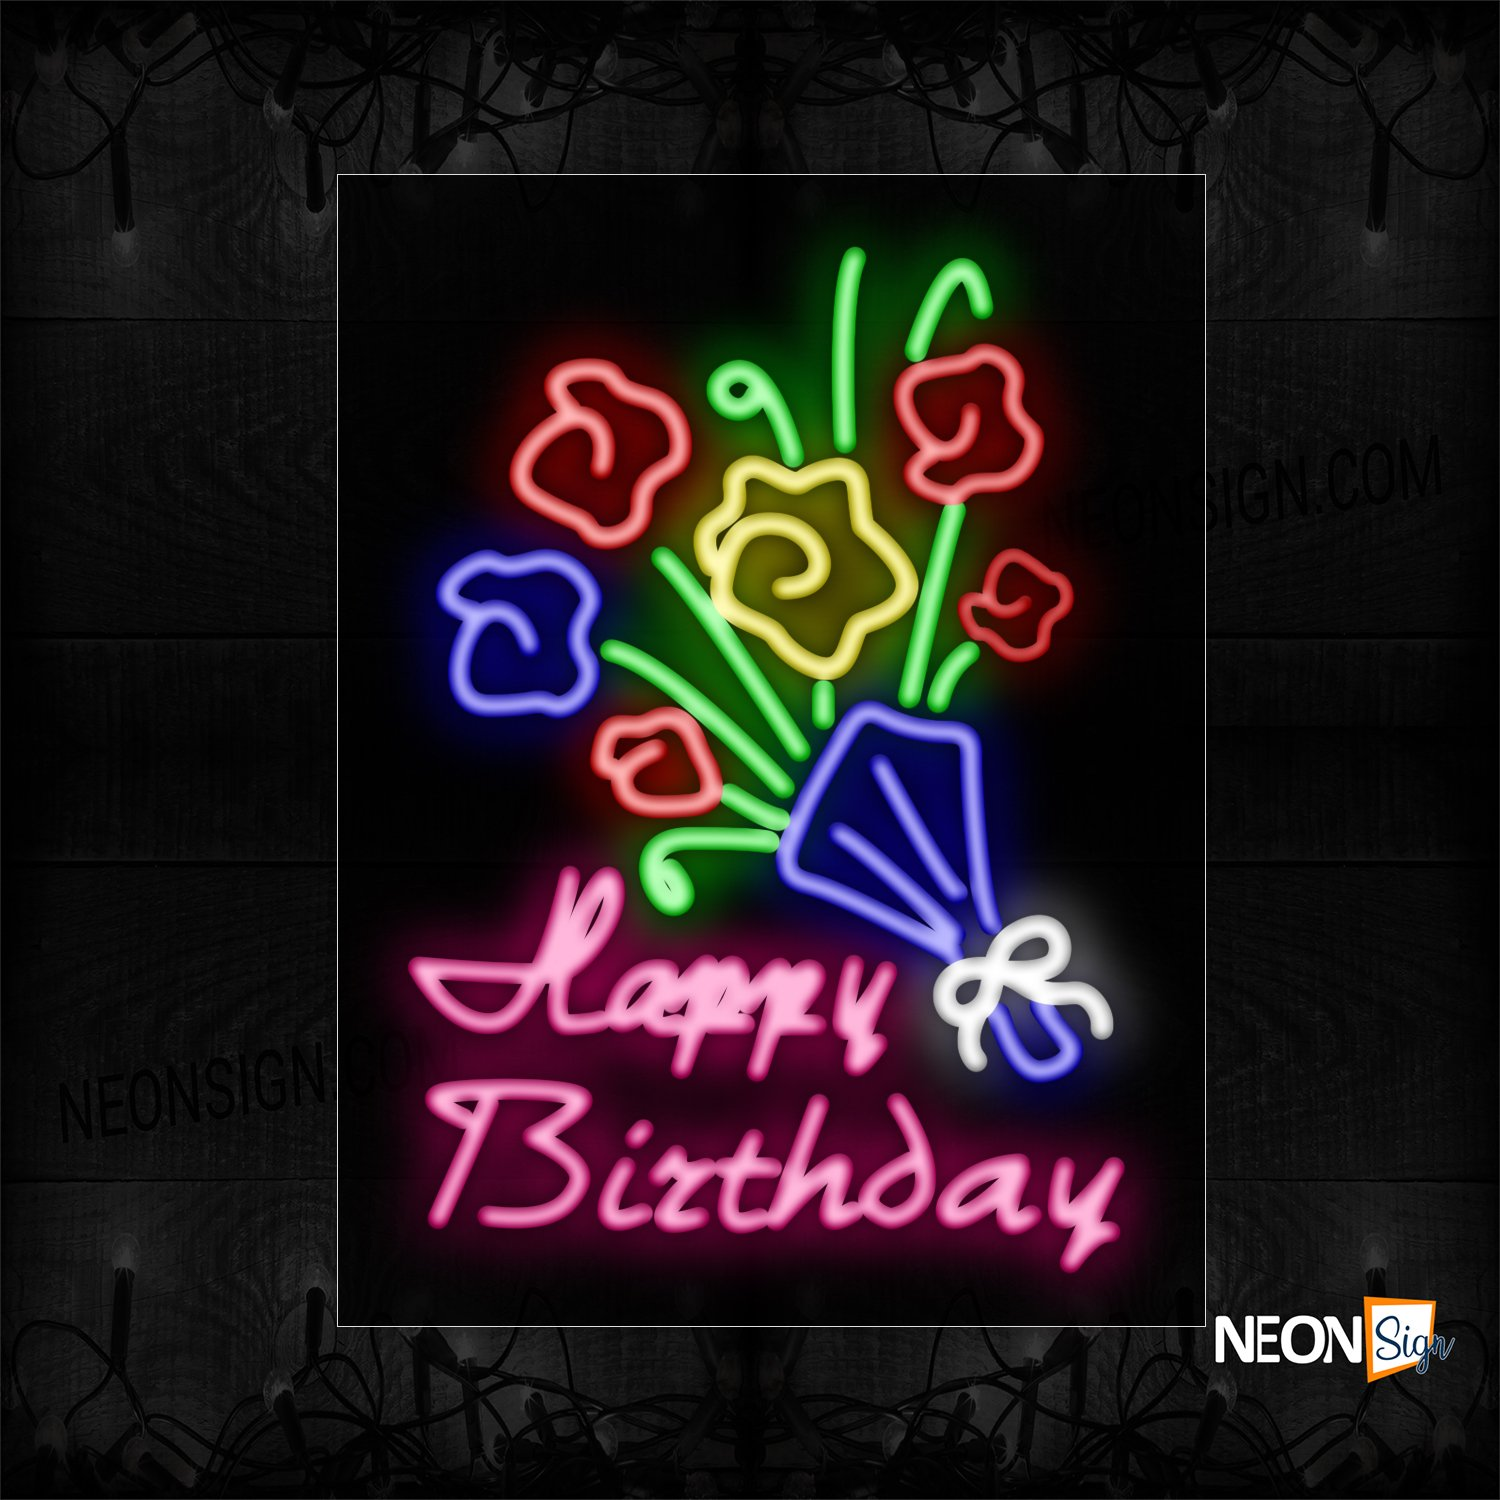 Image of 10465 Happy Birthday With Flower Logo Neon Sign_24x31 Black Backing